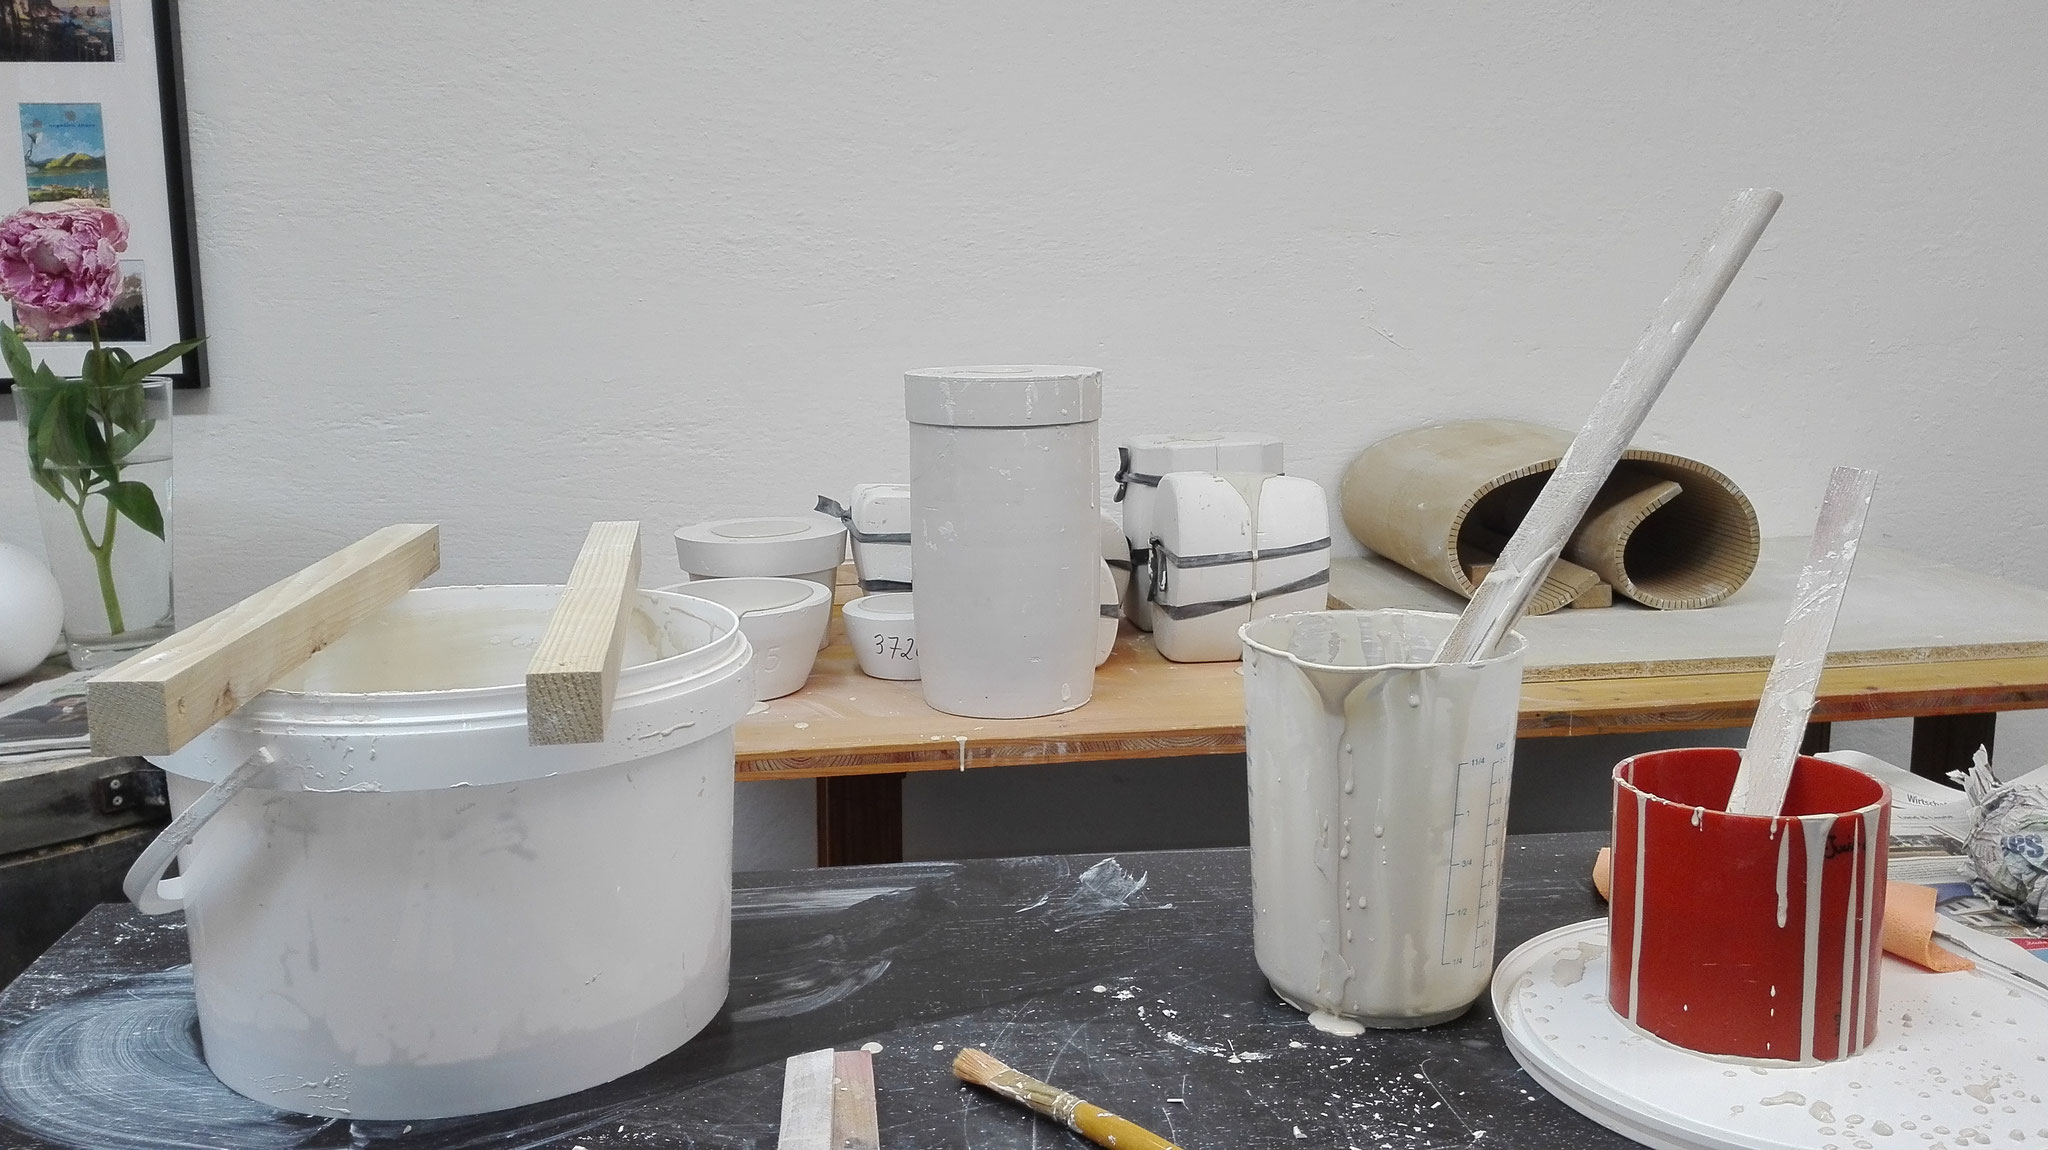 Gießen mit Porzellan | casting with porcelain © 2017 created by Juliane Leitner